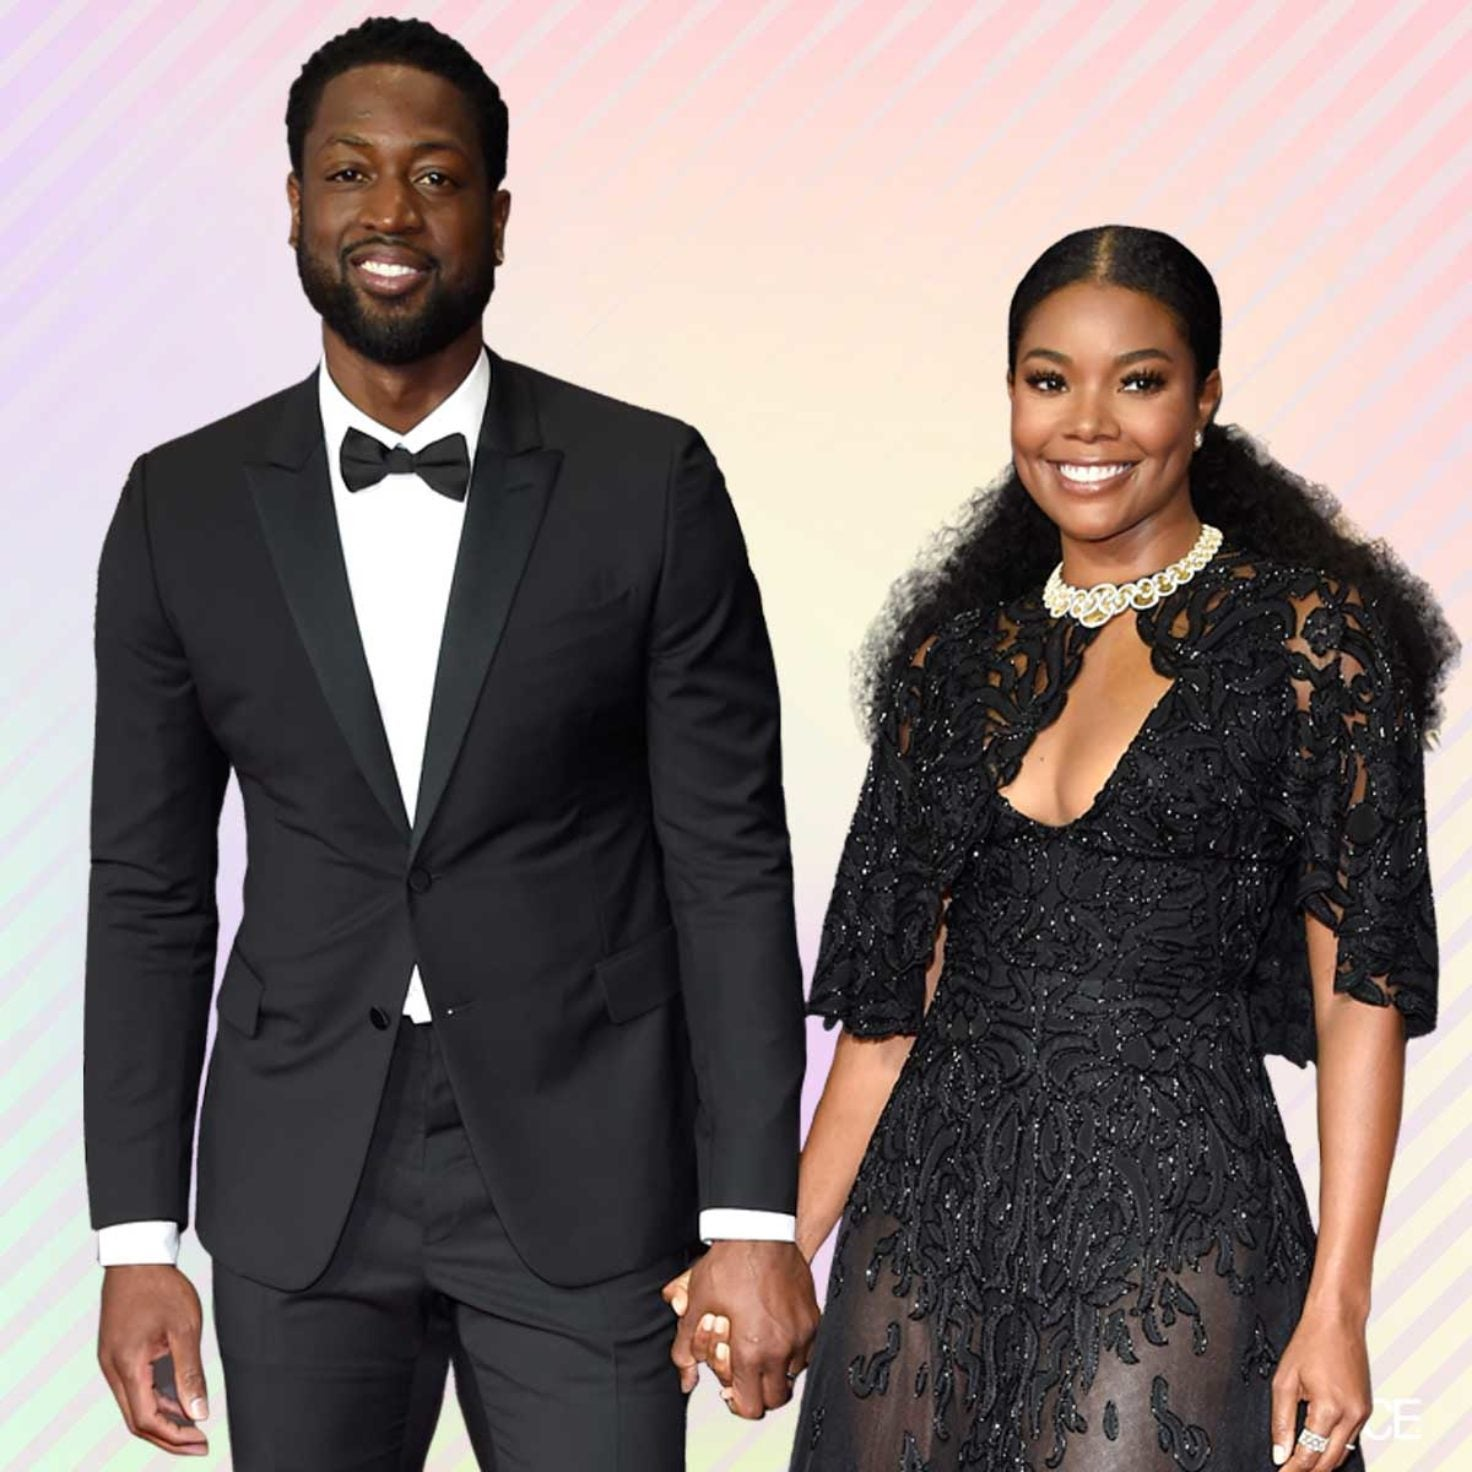 Gabrielle Union Reveals She And Husband Dwyane Wade Go To Couples' Therapy